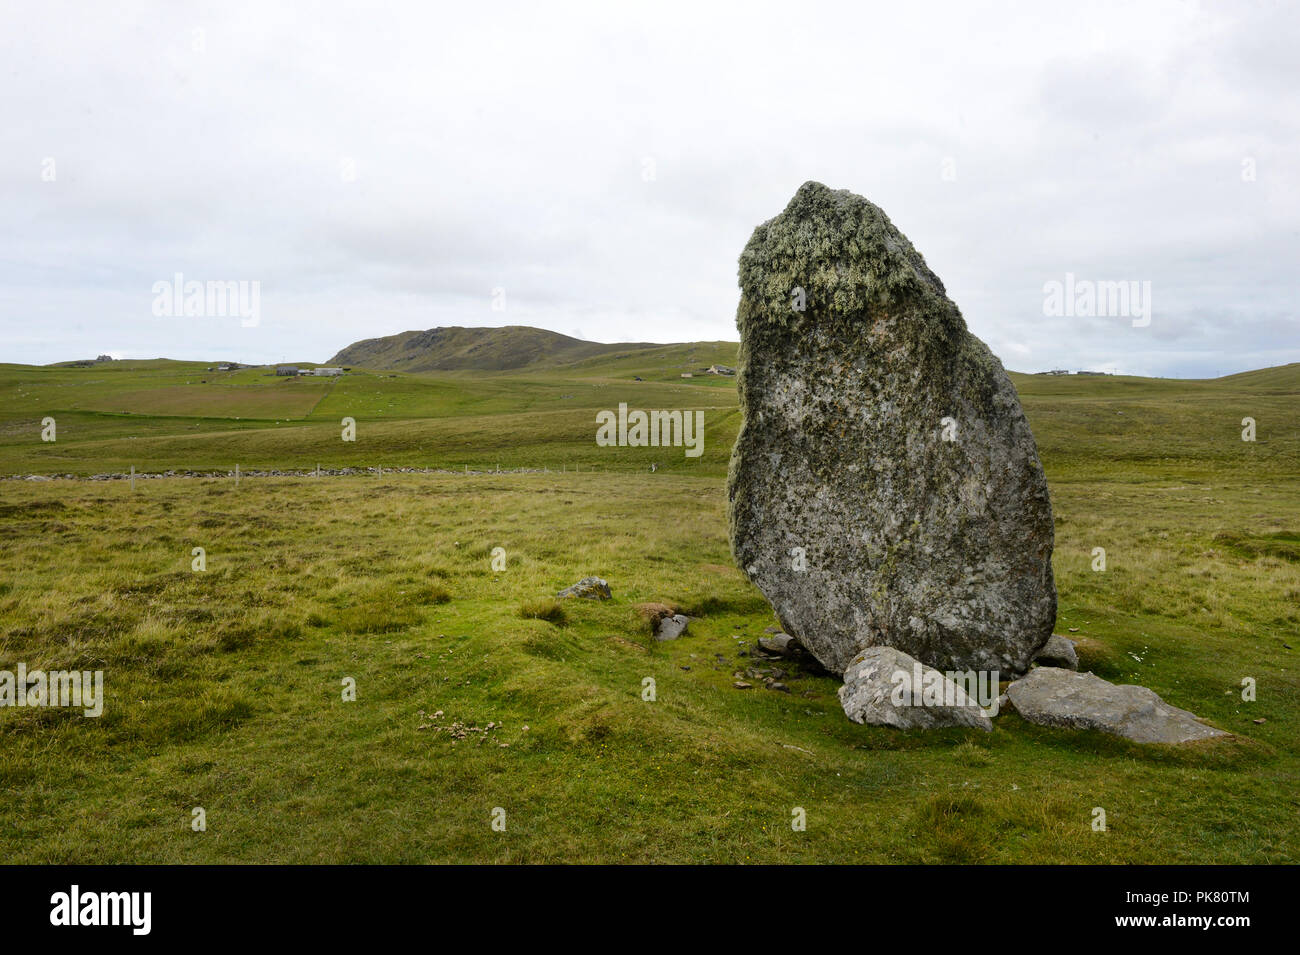 Standing Stones on the Island of Unst in the Shetland Islands - Stock Image